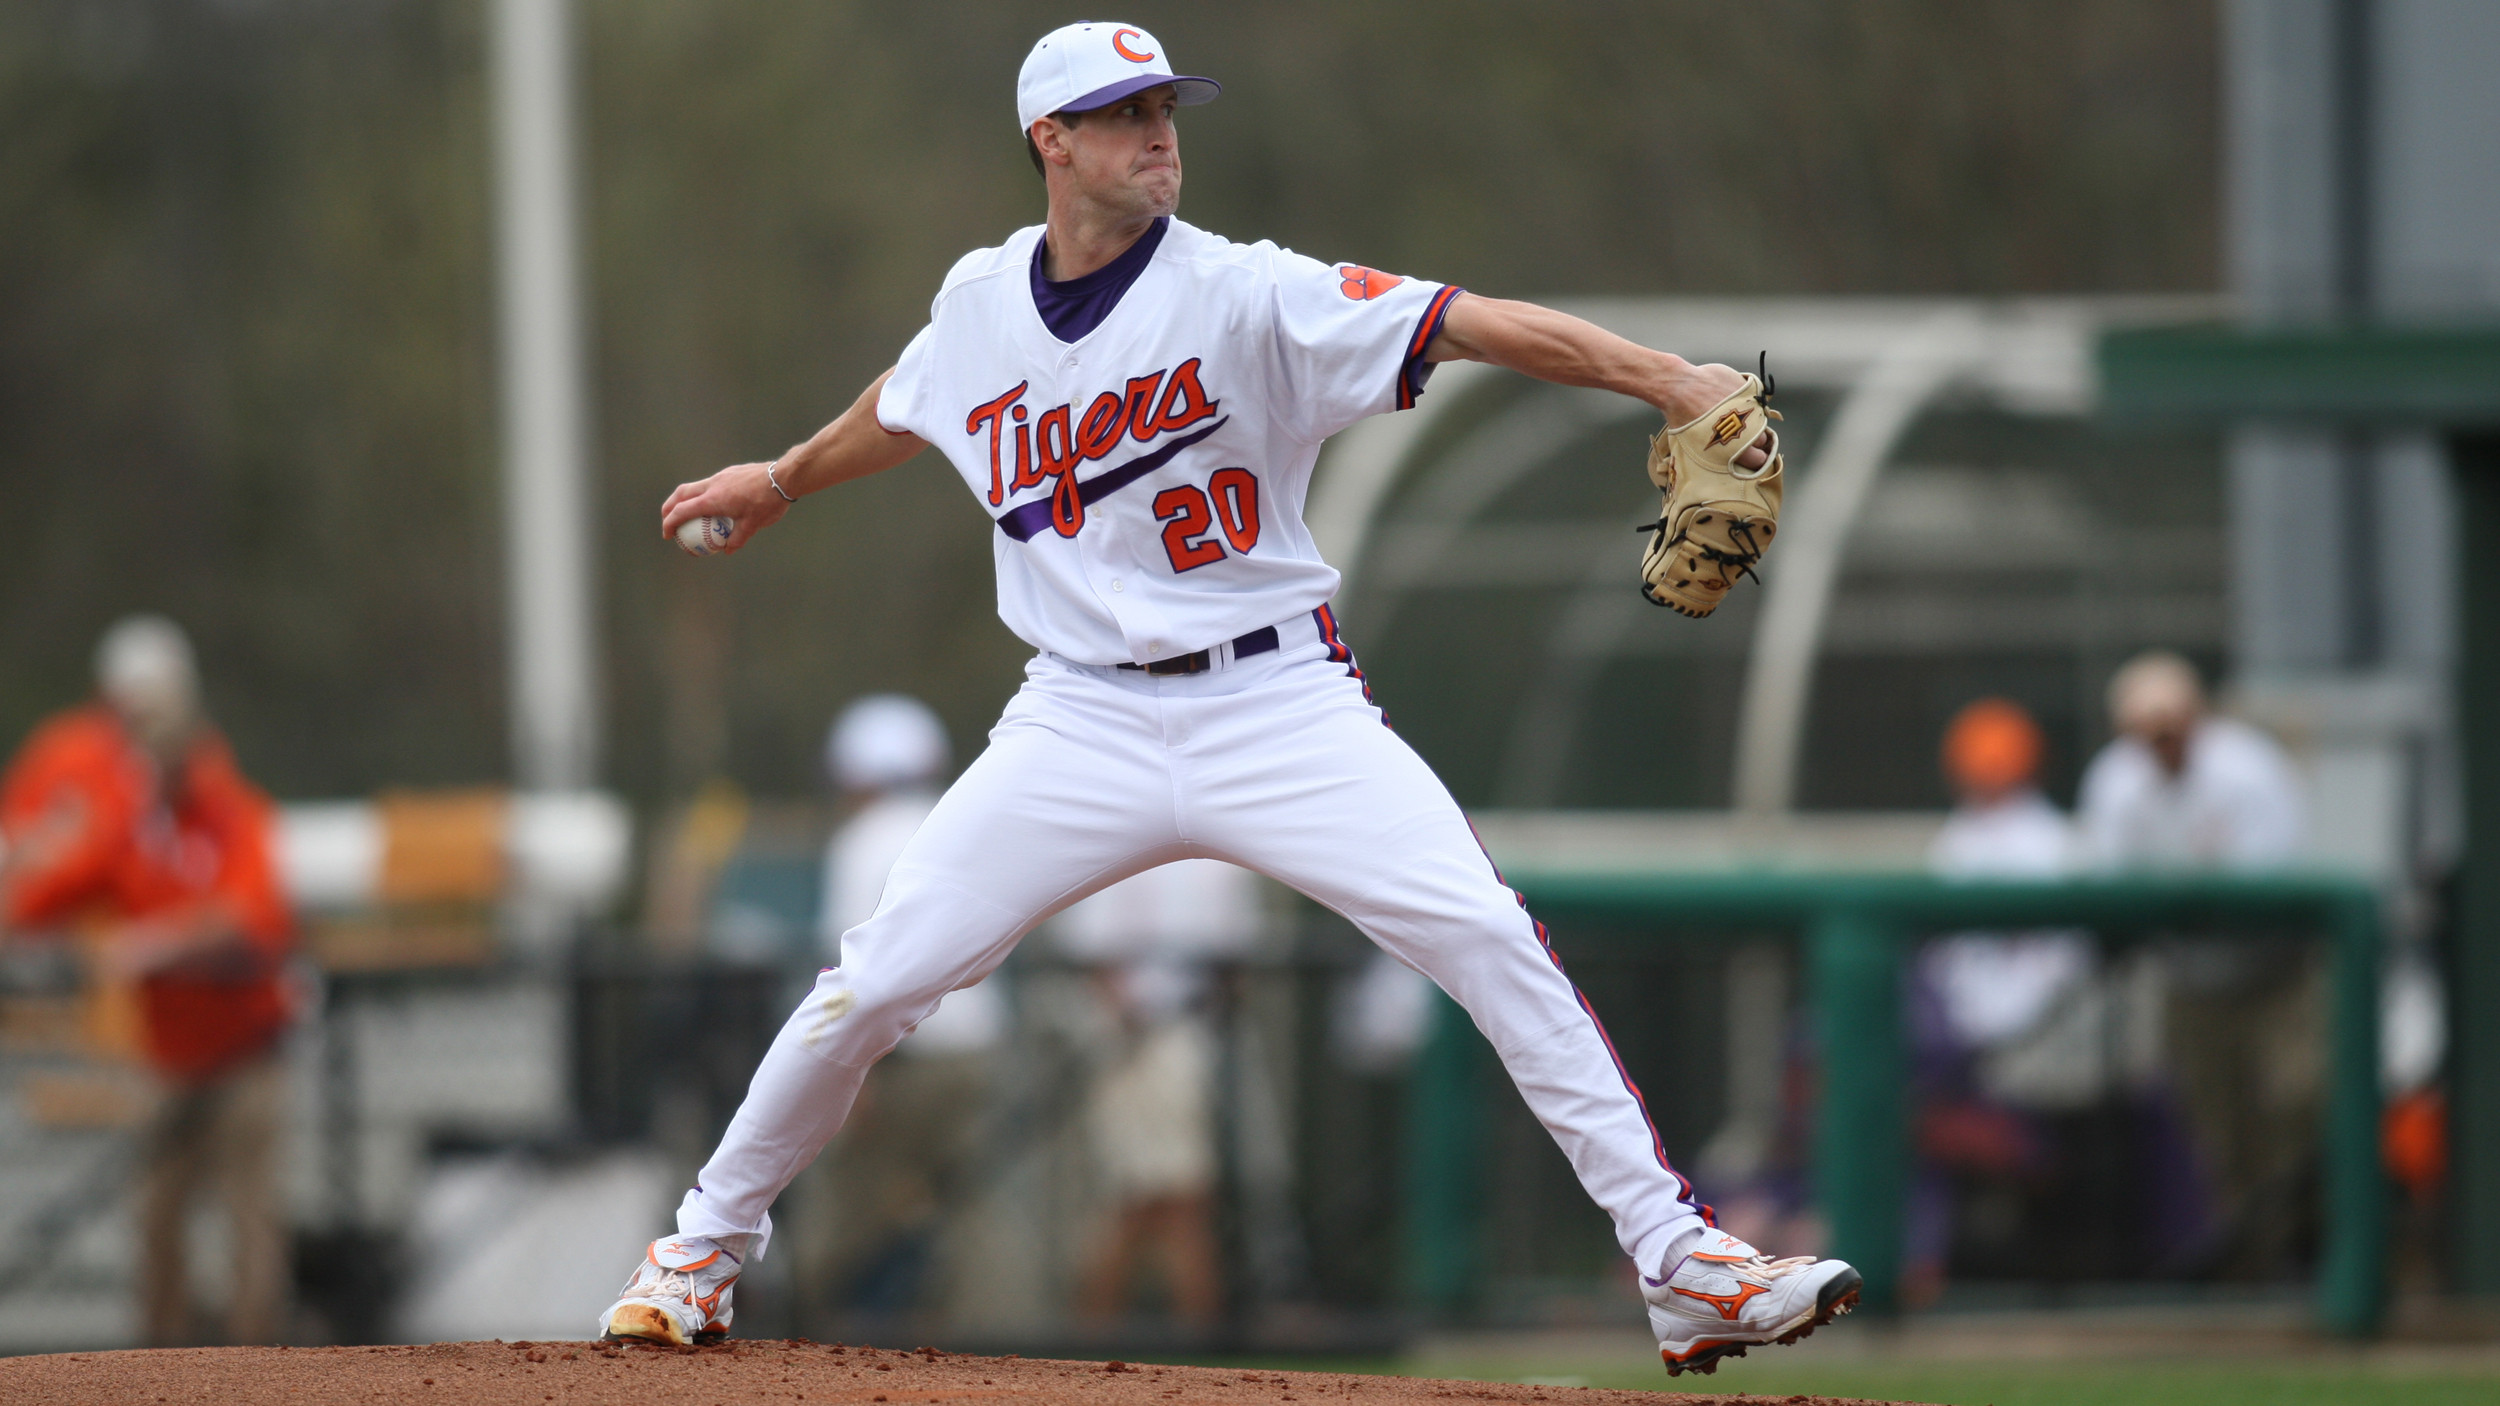 Firth Named to NCBWA Stopper-of-the-Year Award Watch List